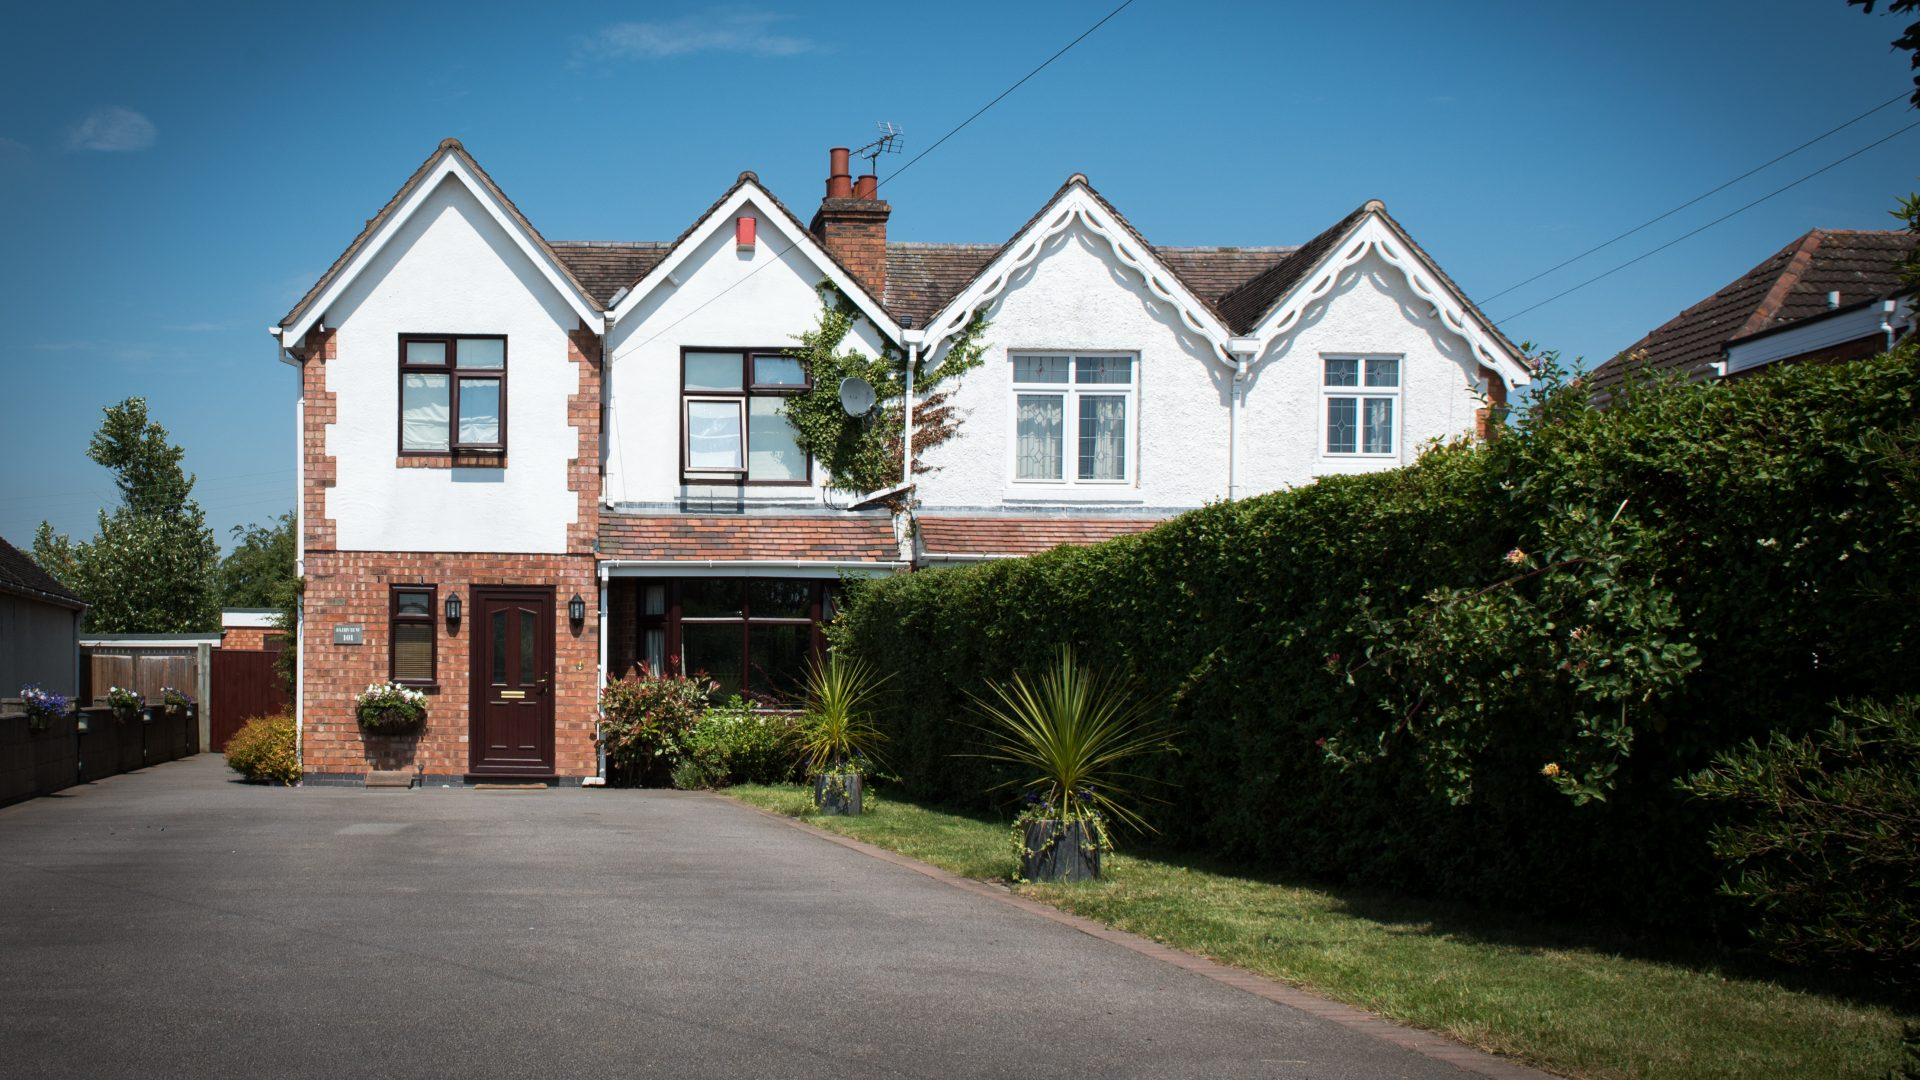 Fillongley Road, Meriden for sale with Mr and Mrs Clarke estate agent